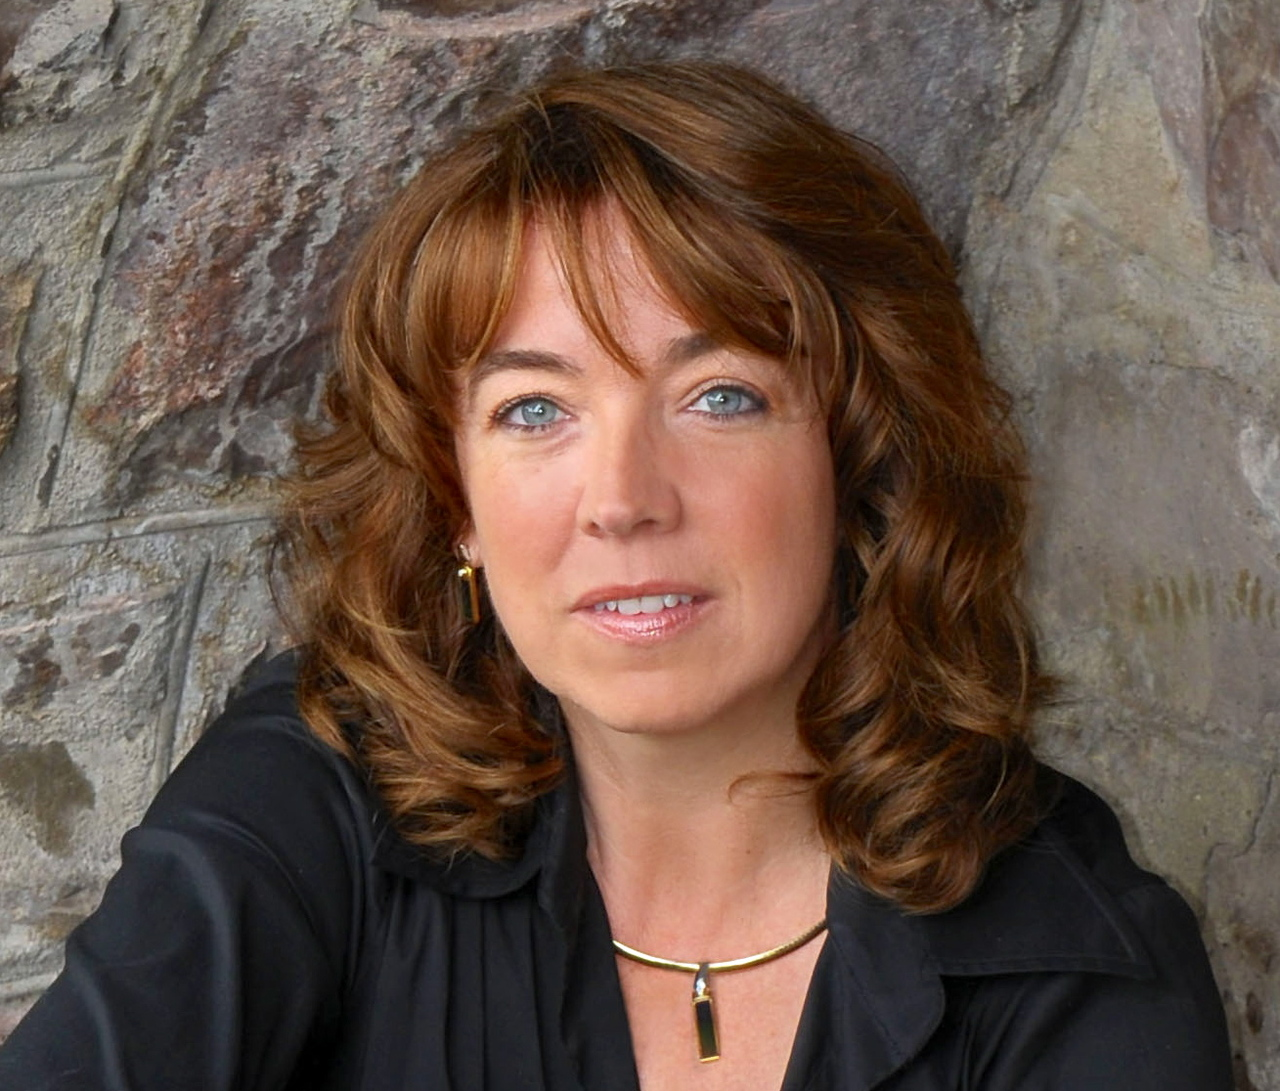 Micki browning author photo